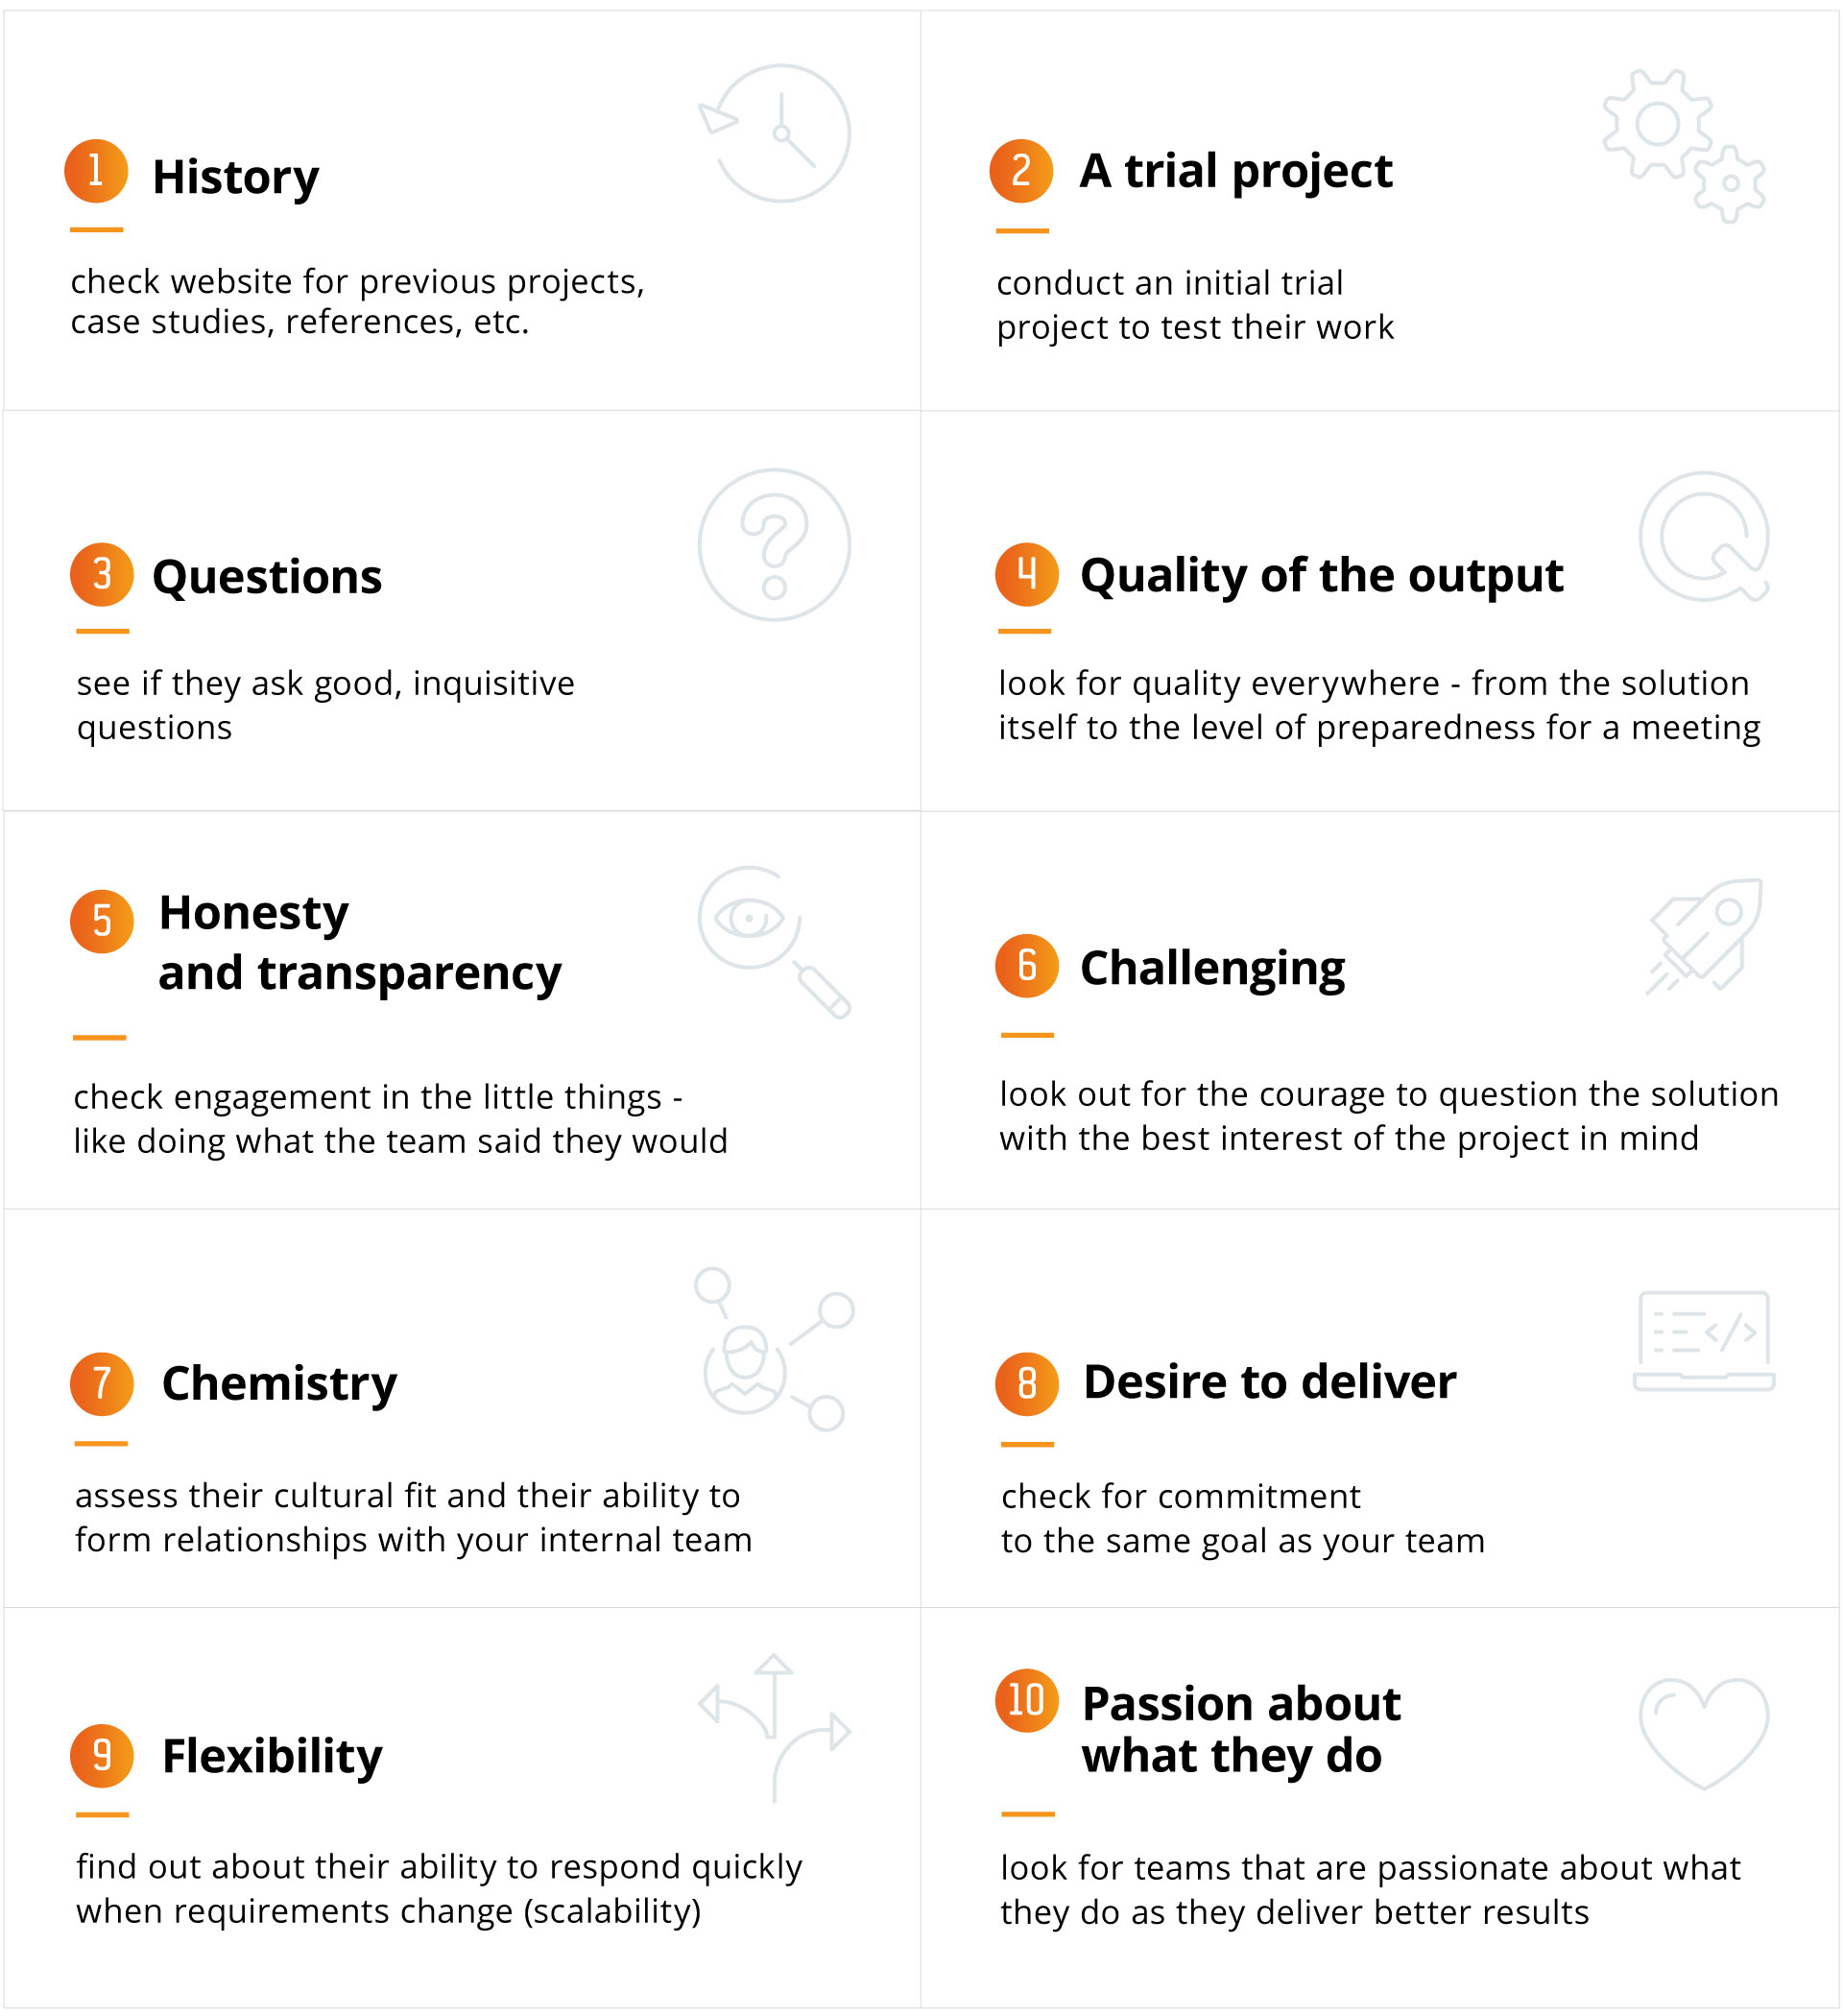 10 signs your technology partner is engaged in the project